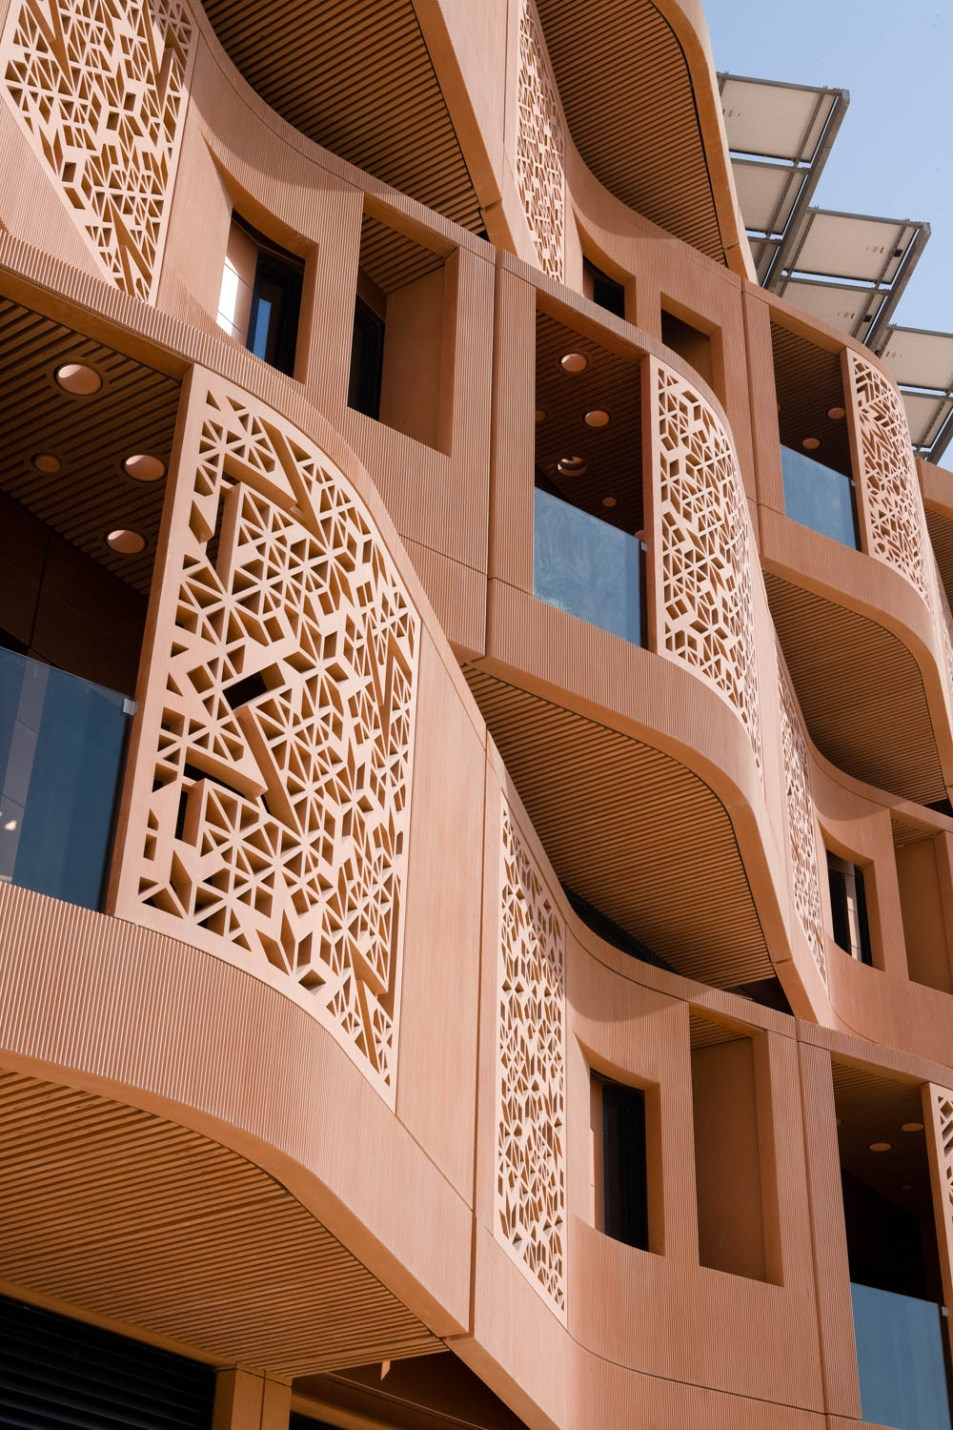 Architectural detailing of the Masdar Instute designed by architects Fosters and Partners. Photographed for the New York Times by photographer, Duncan Chard